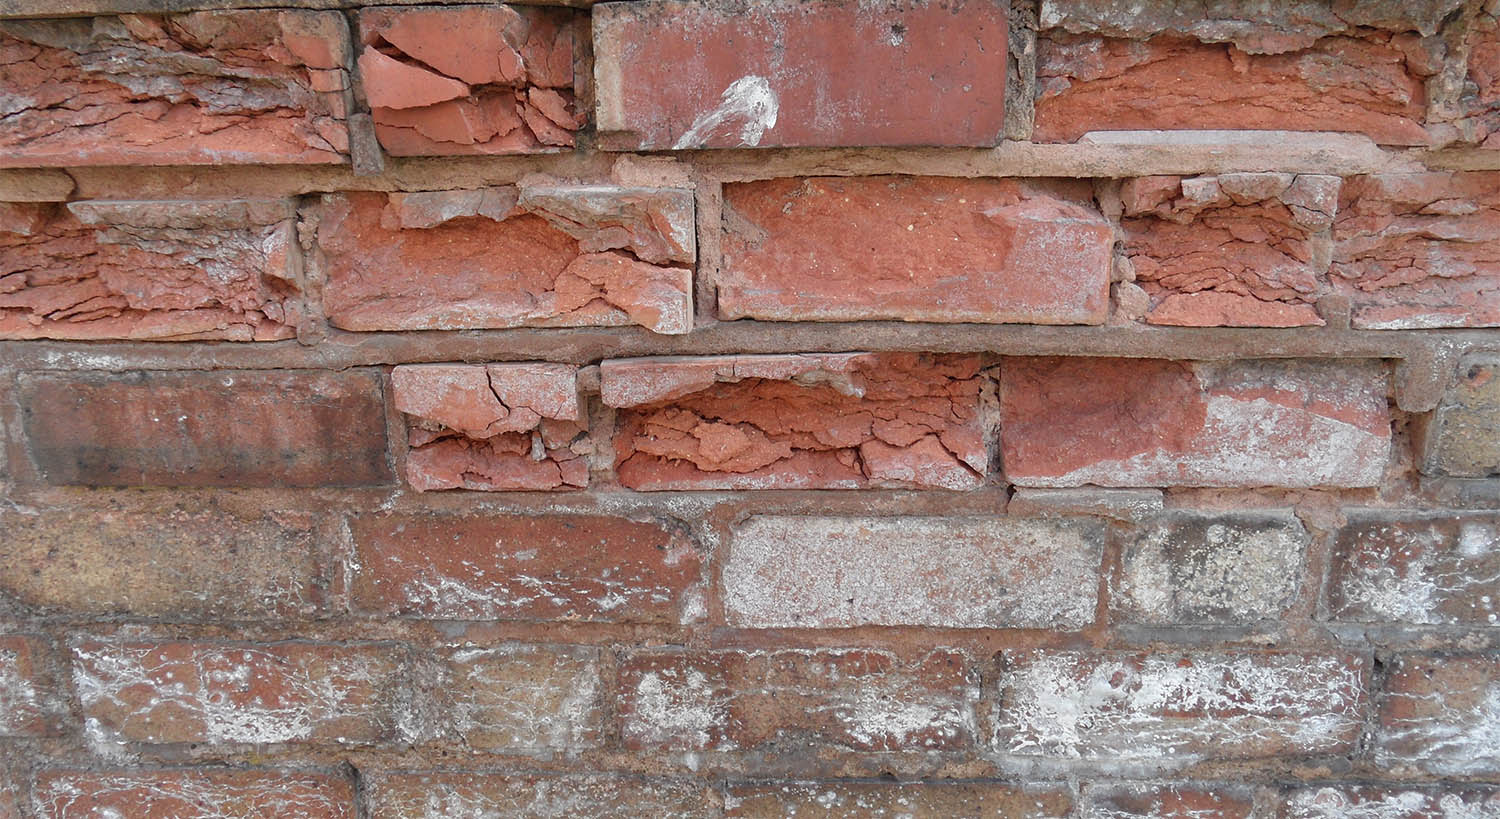 Brick veneer with both Spalling damage and Efflorescence.